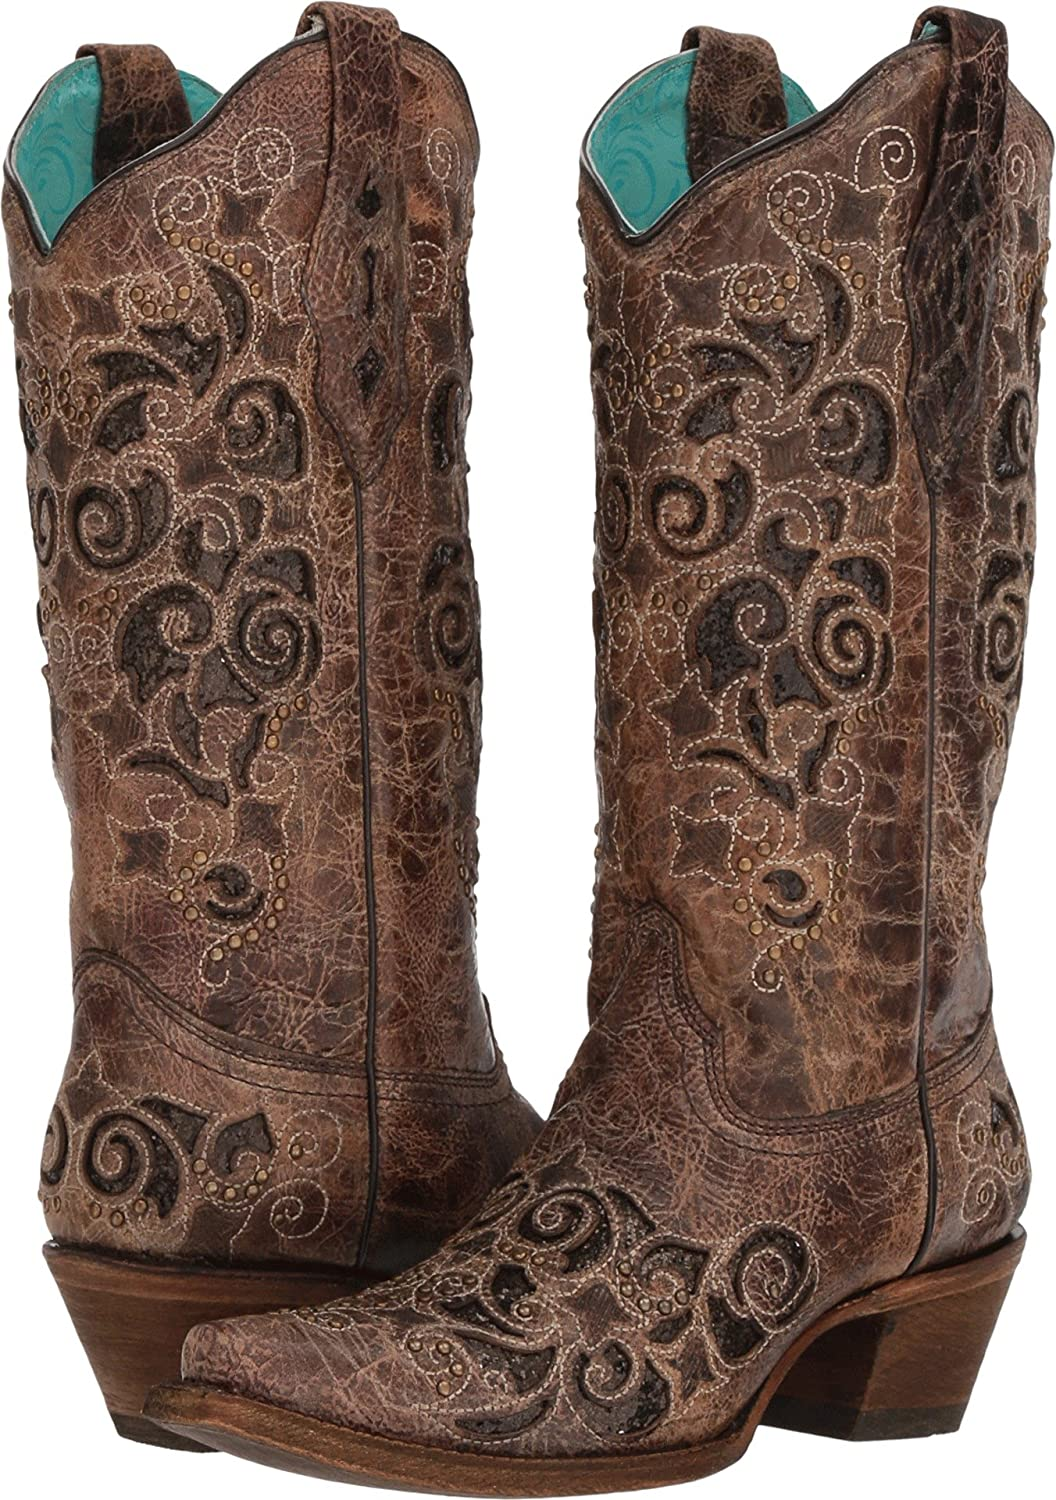 Corral Boots Womens A3228 B079331V3S 8.5 B(M) US|Brown